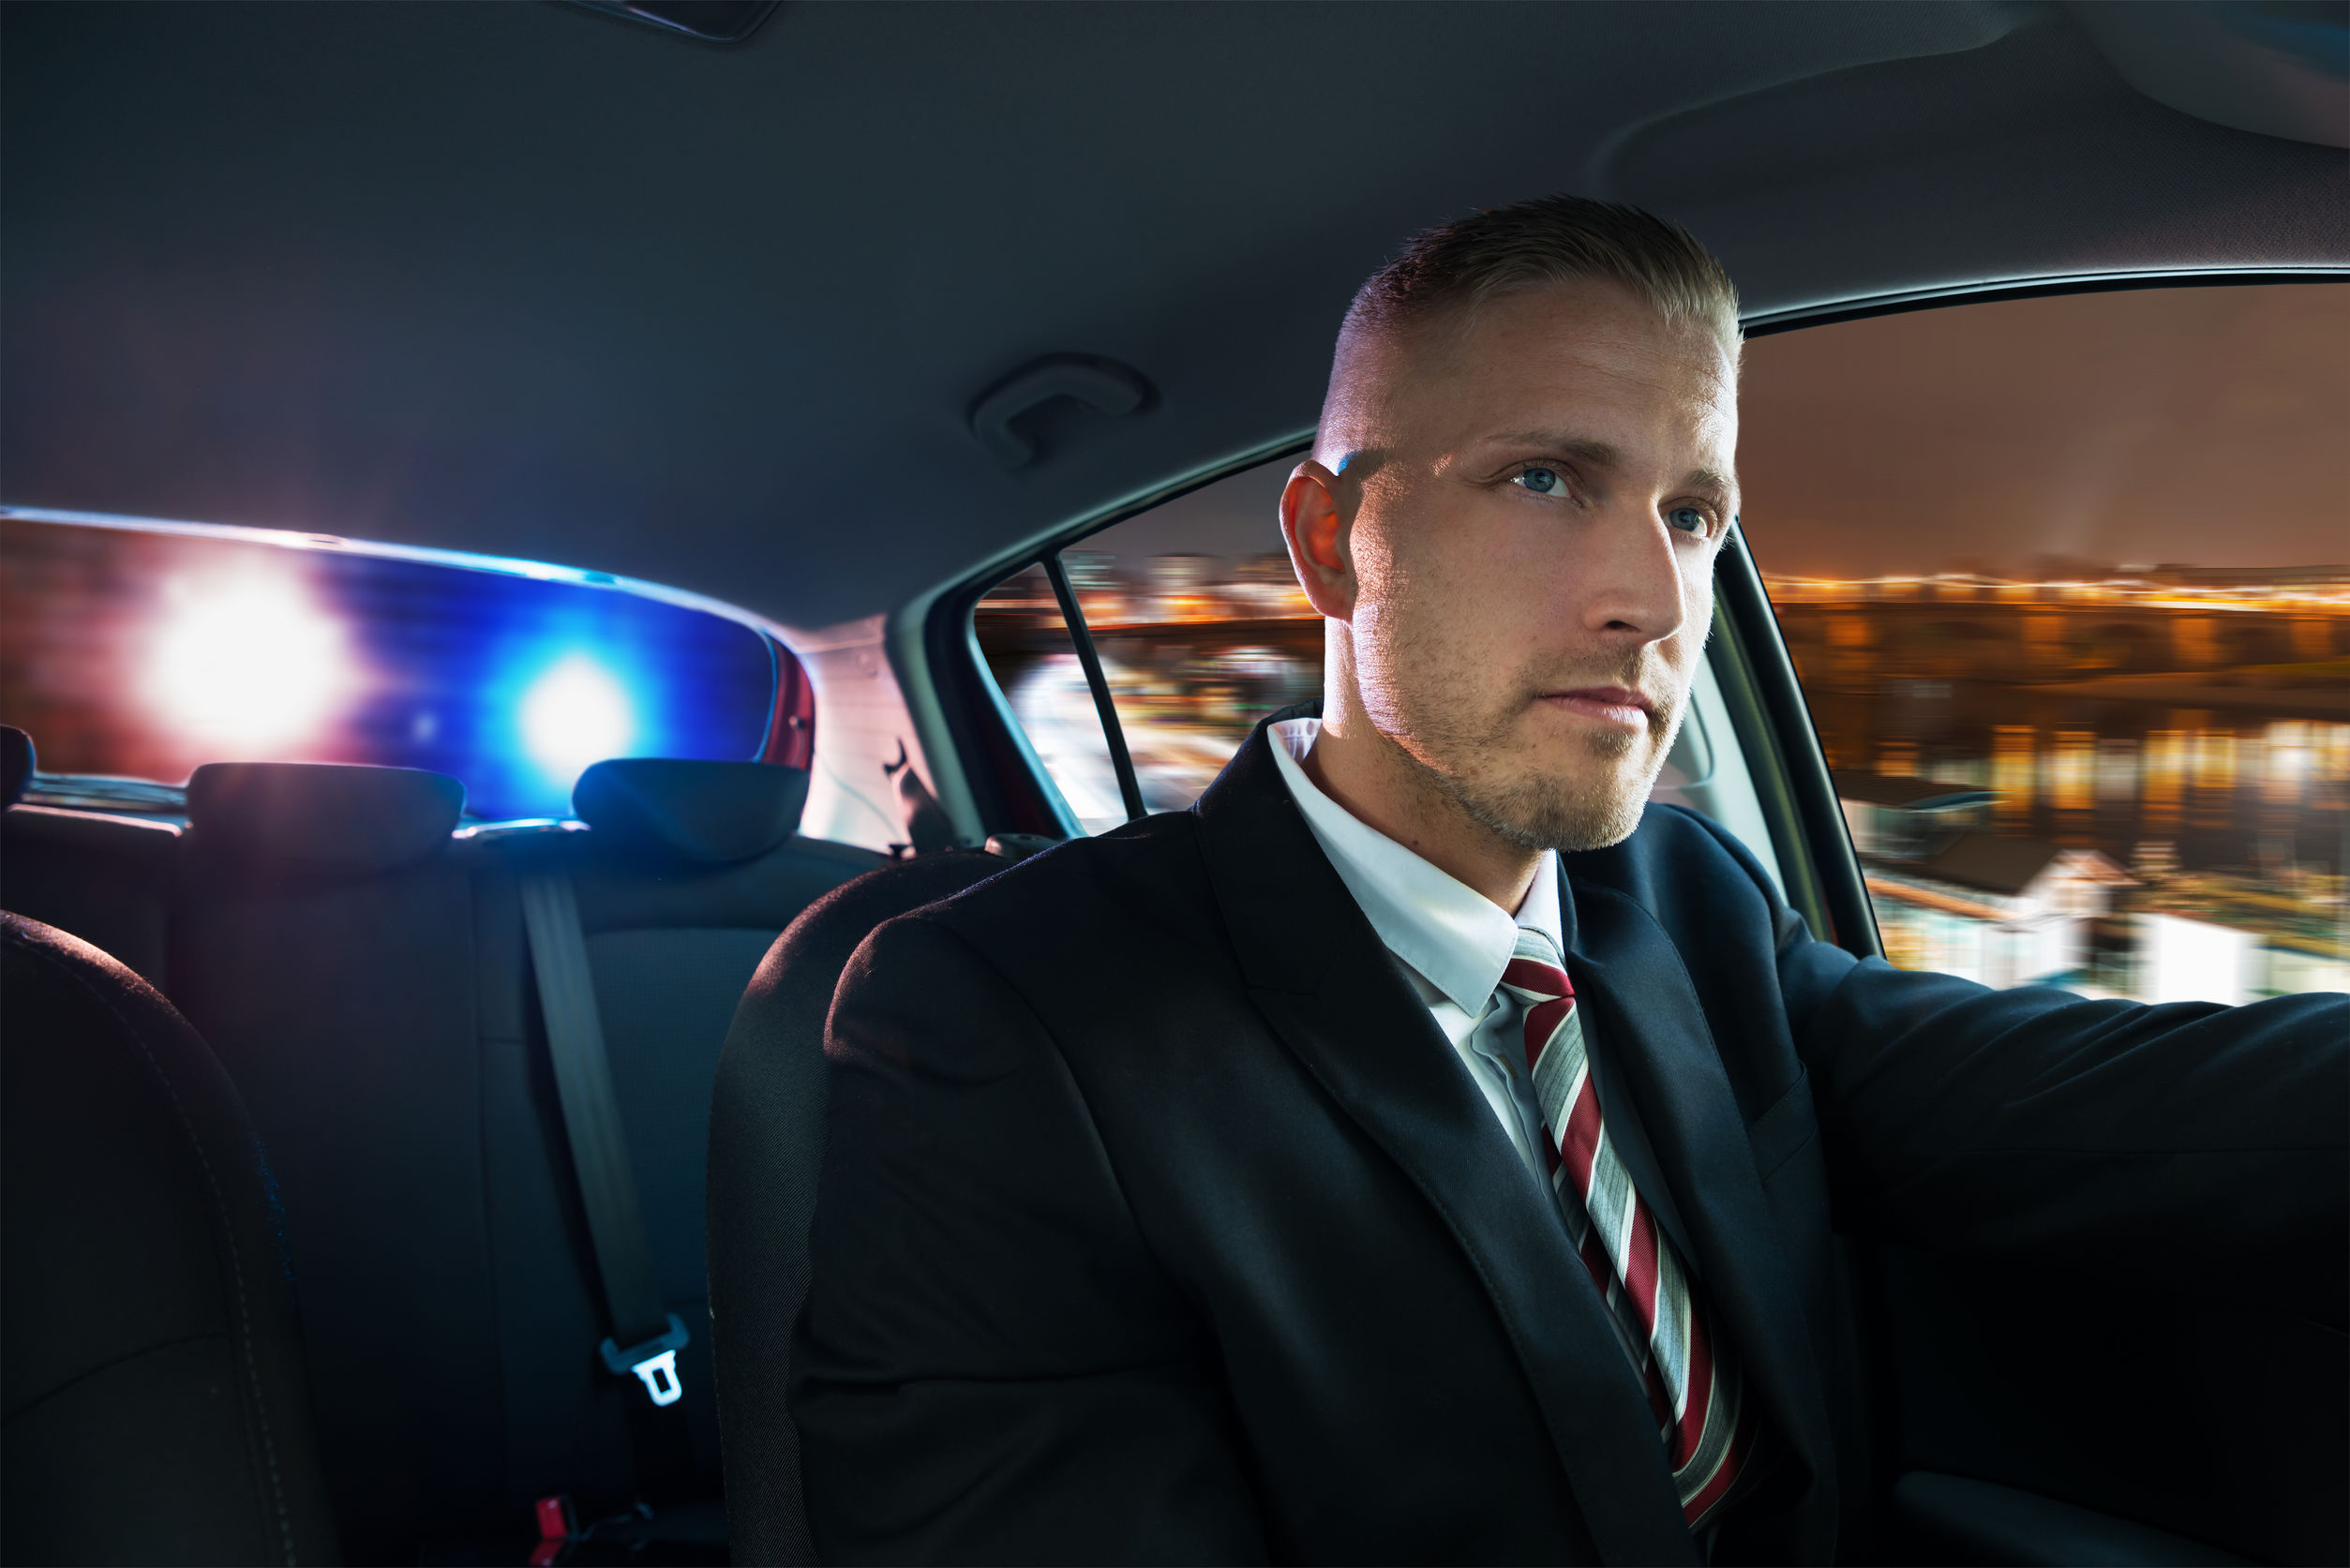 Pulled Over by the Authorities? Here's What You Need to Do